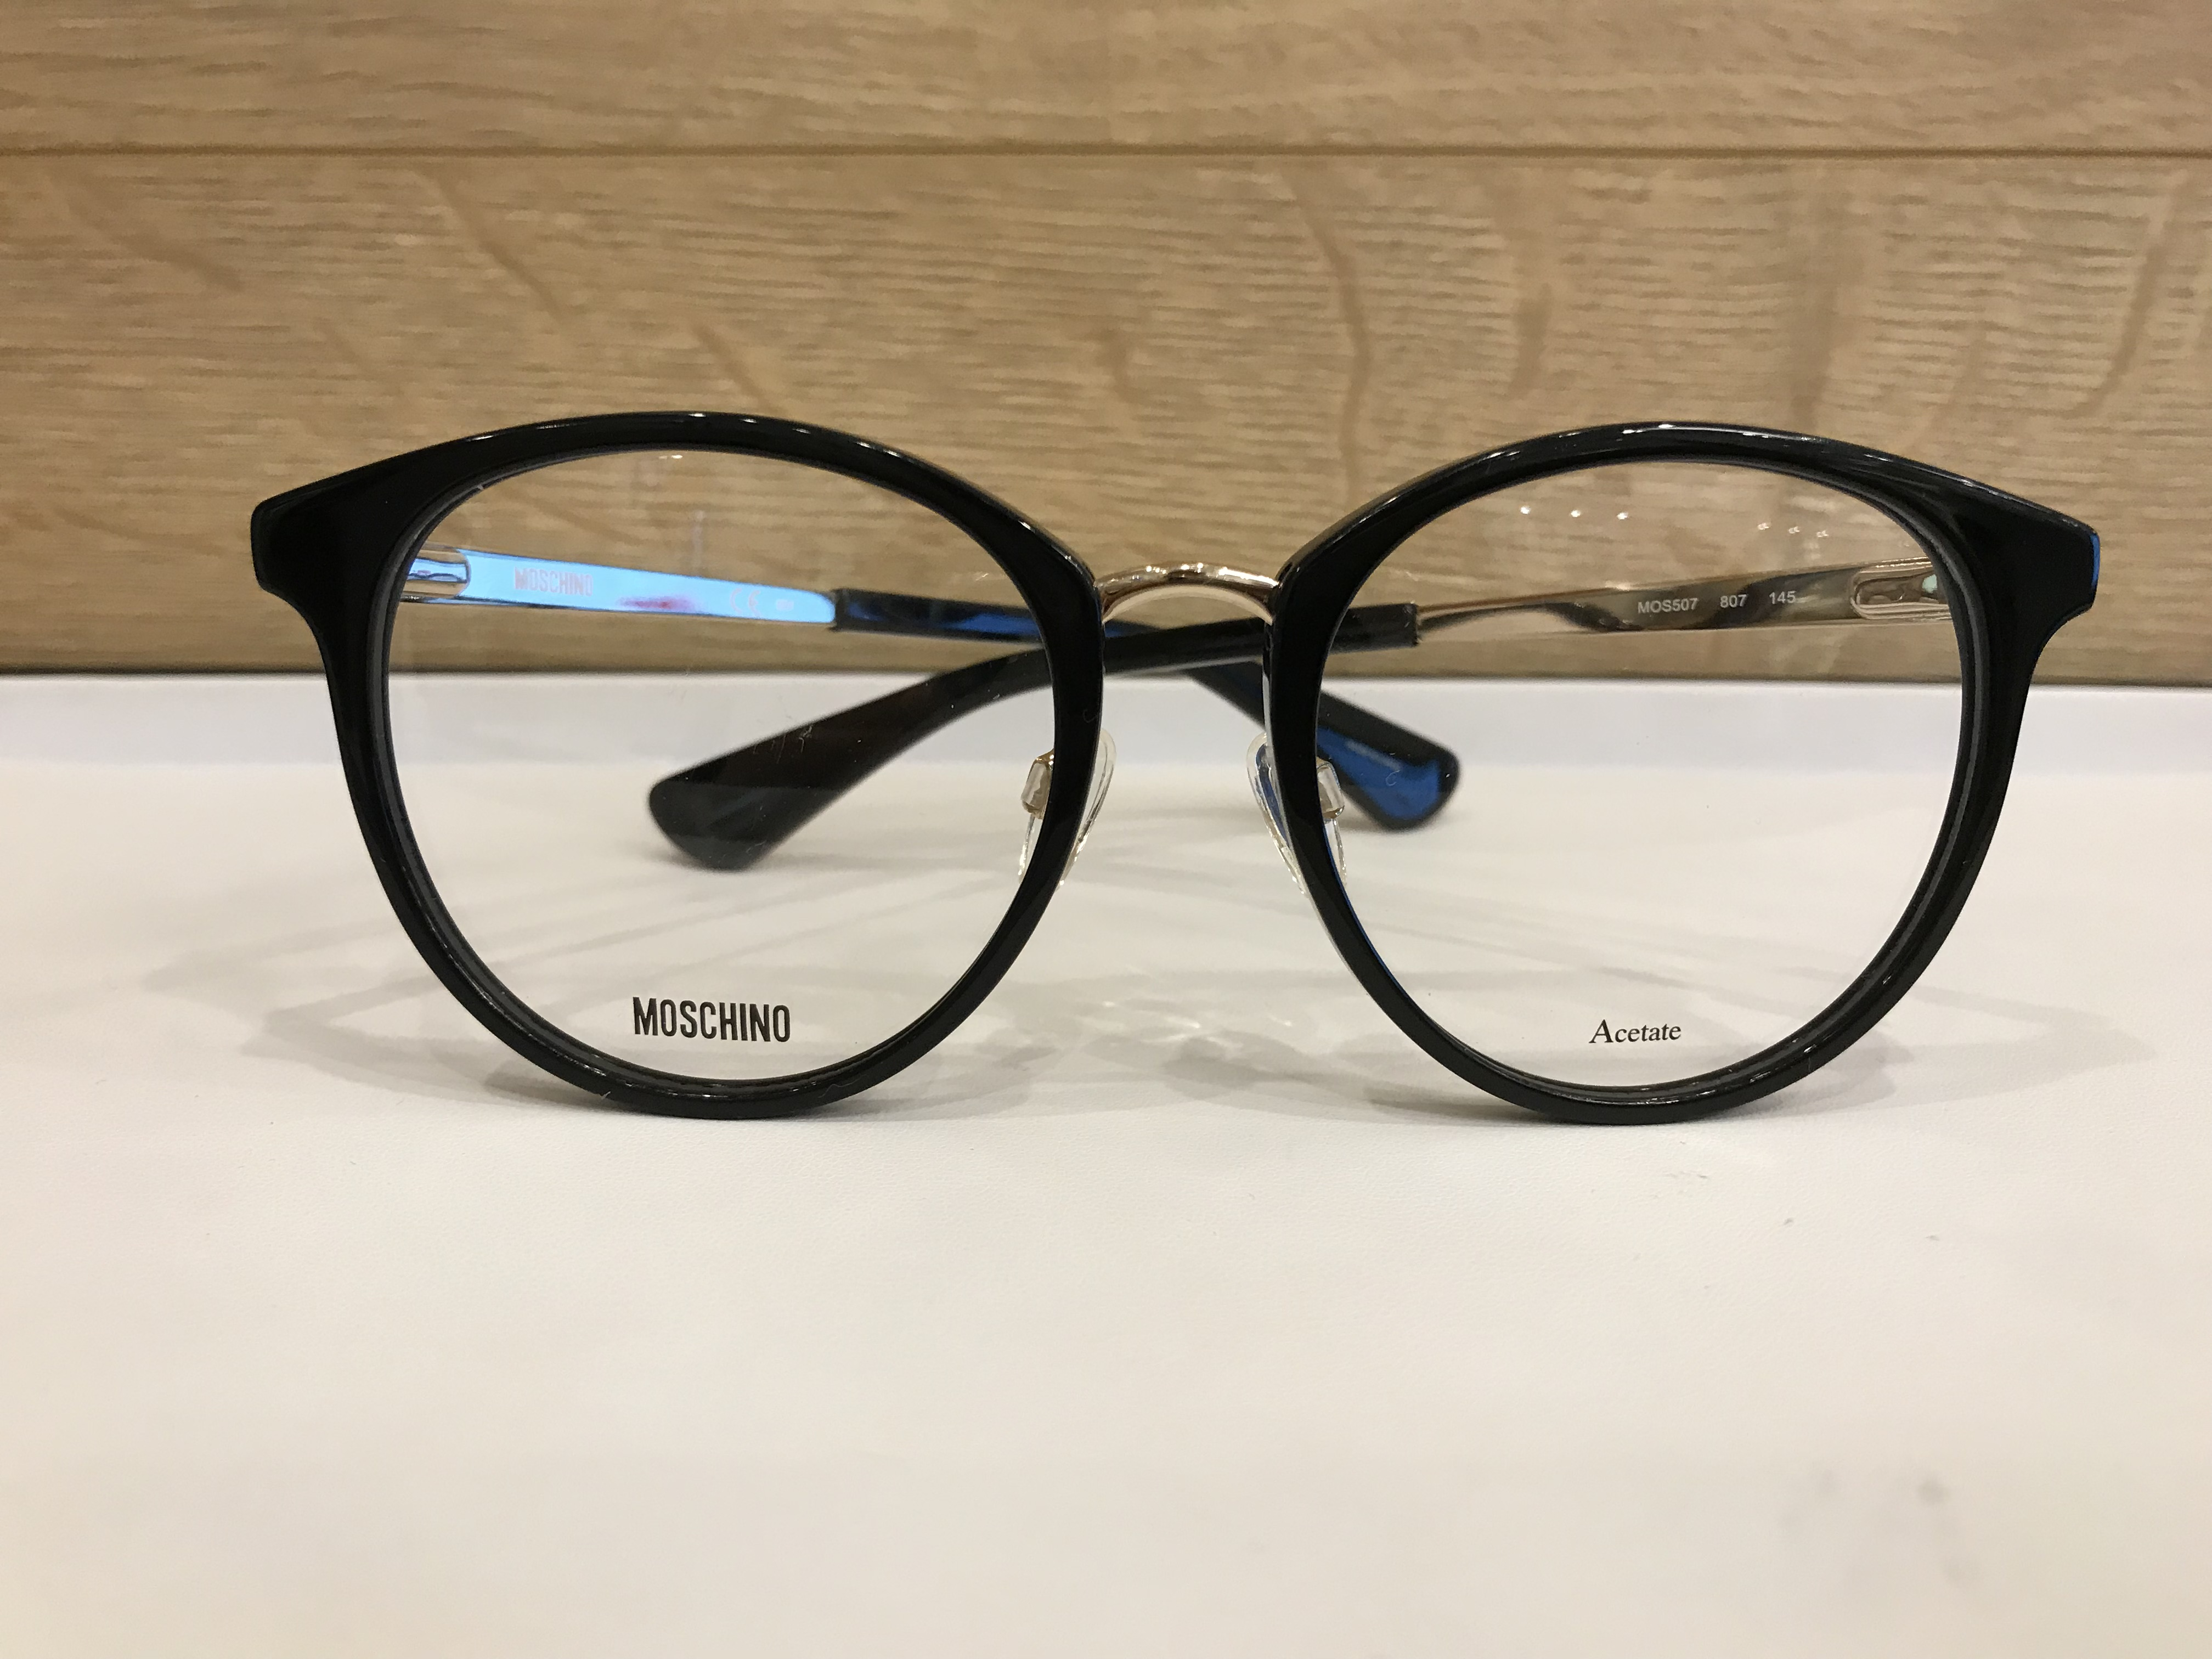 960c7f745165 MOSCHINO EYEWEAR – Skylight Optical